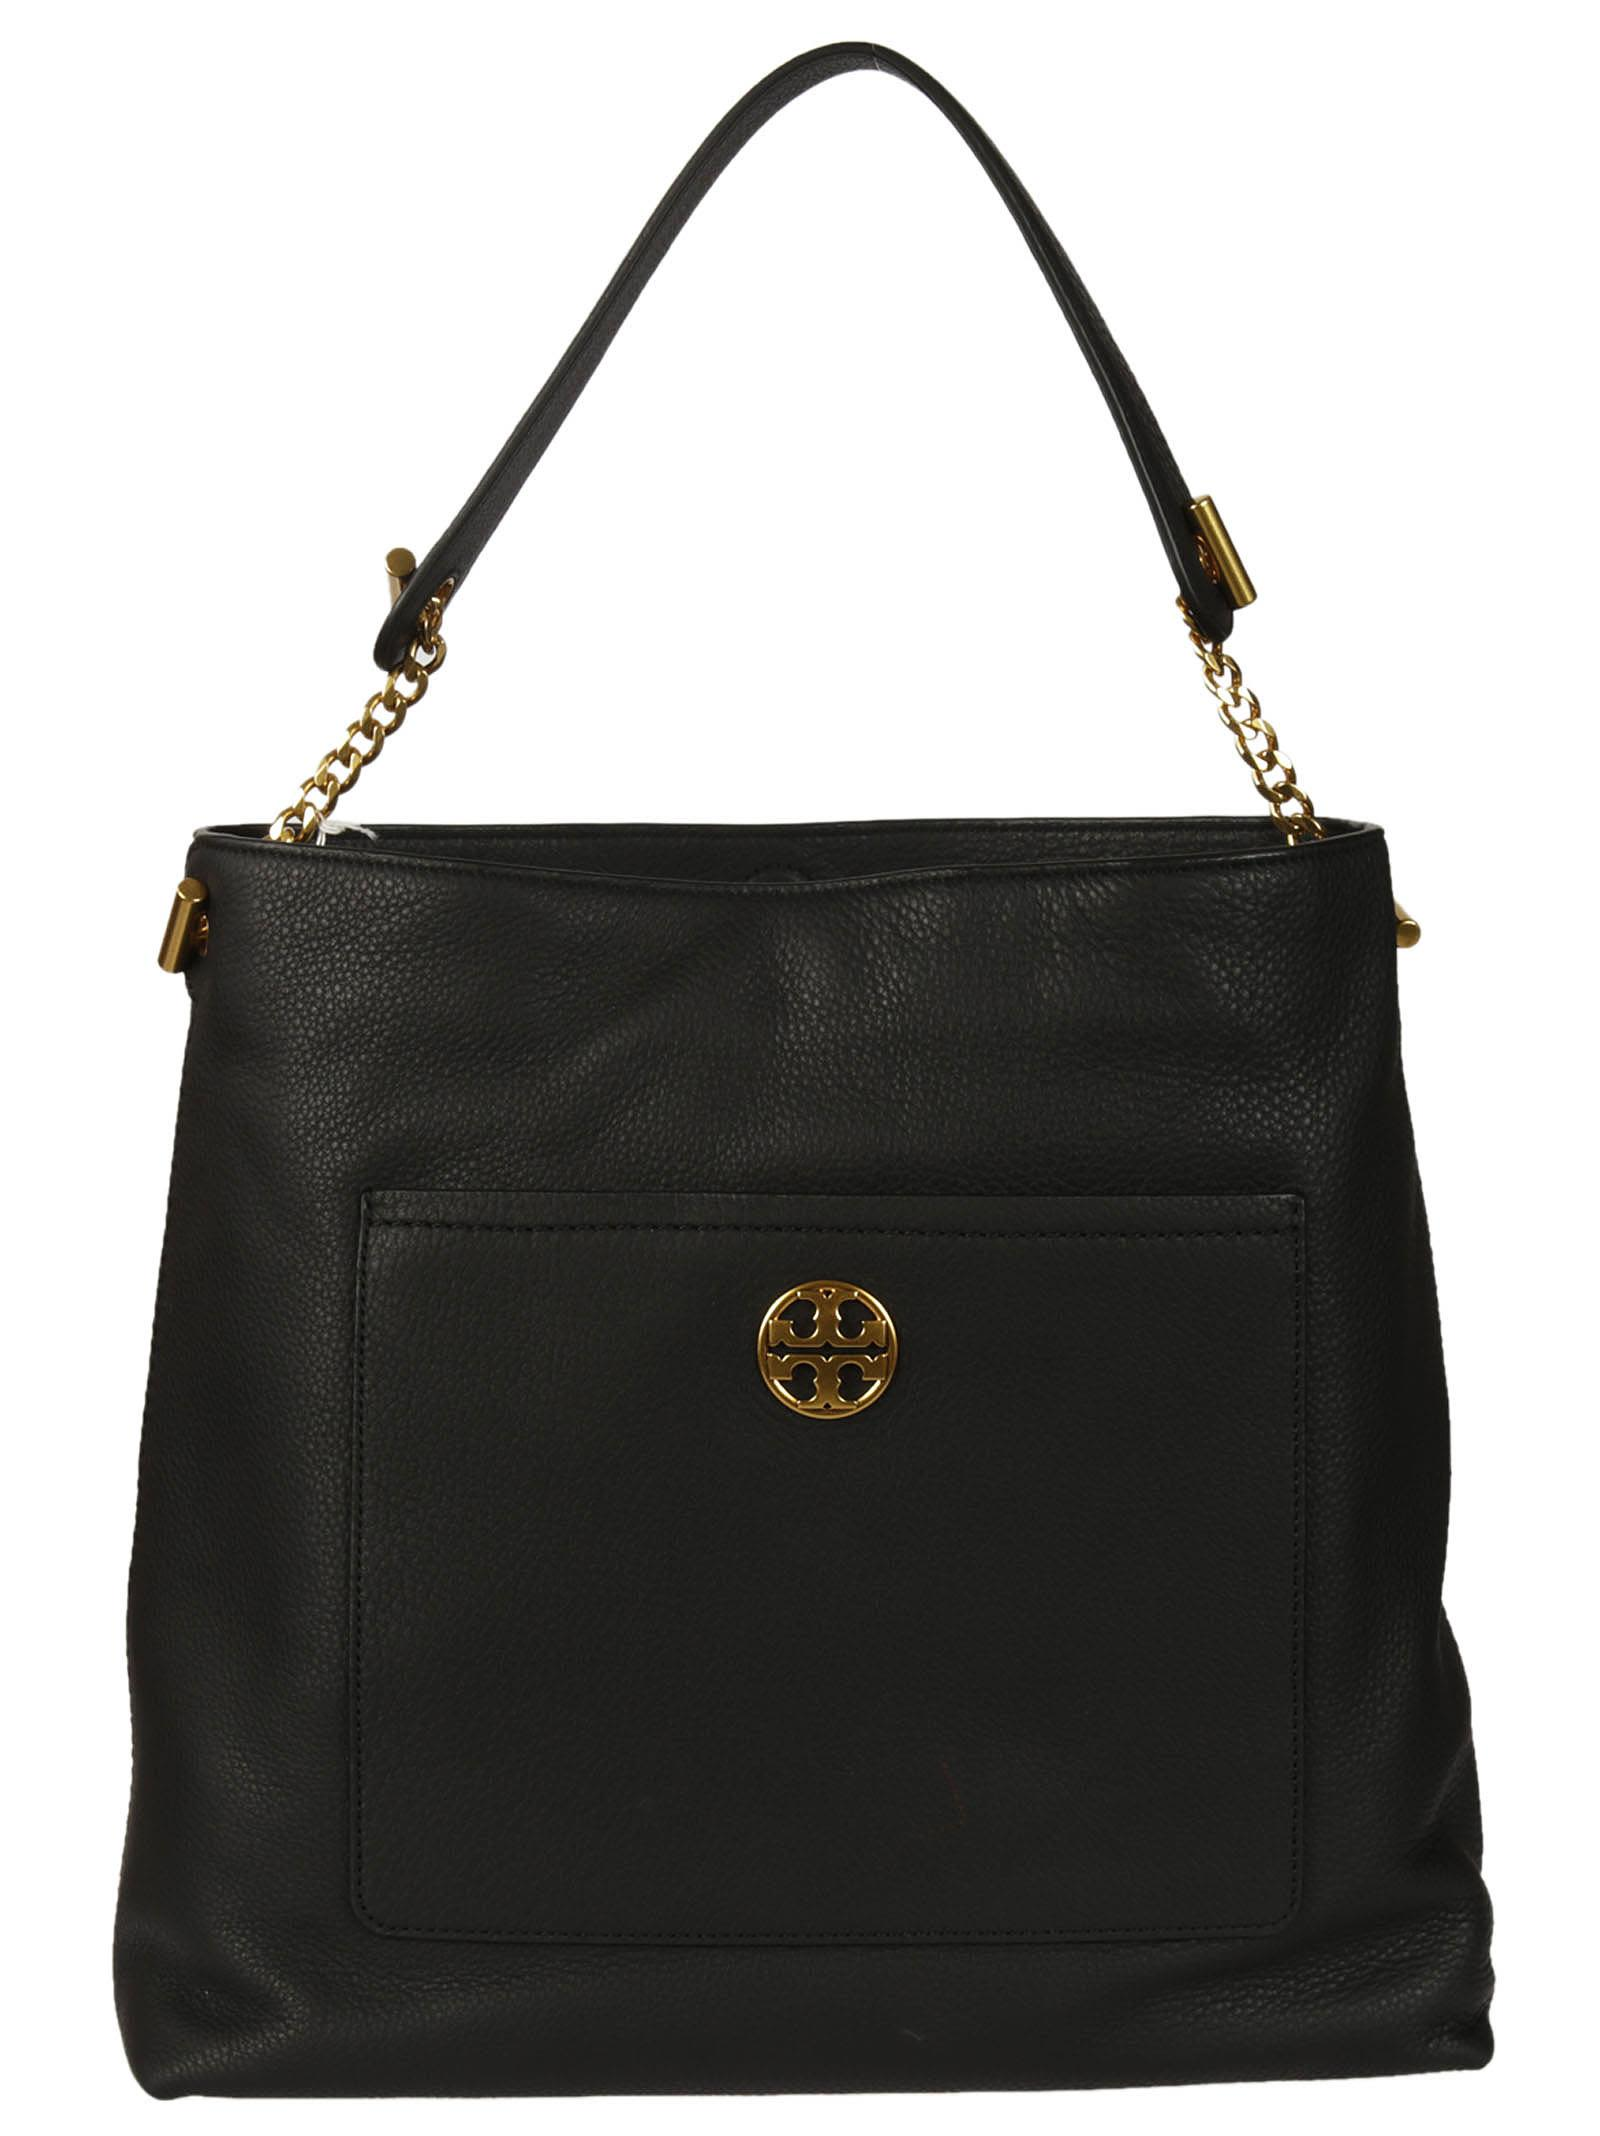 Tory Burch Chelsea Hobo Bag